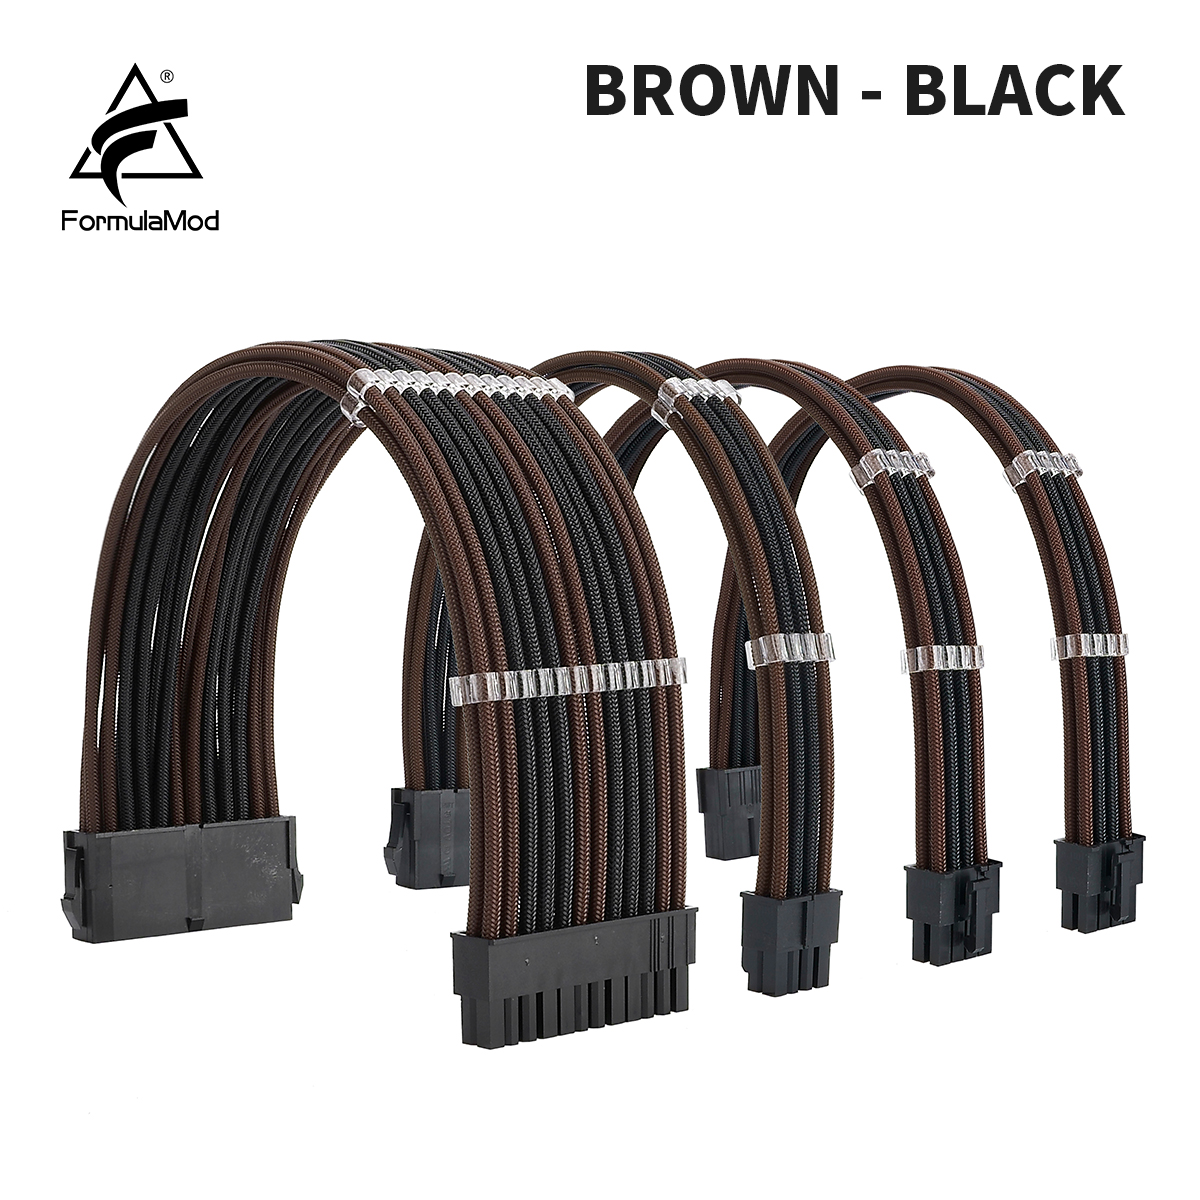 FormulaMod NCK2 Series PSU Extension Cable Kit , Solid Color Cable Mix Combo 300mm ATX24Pin PCI-E8Pin CPU8Pin With Combs